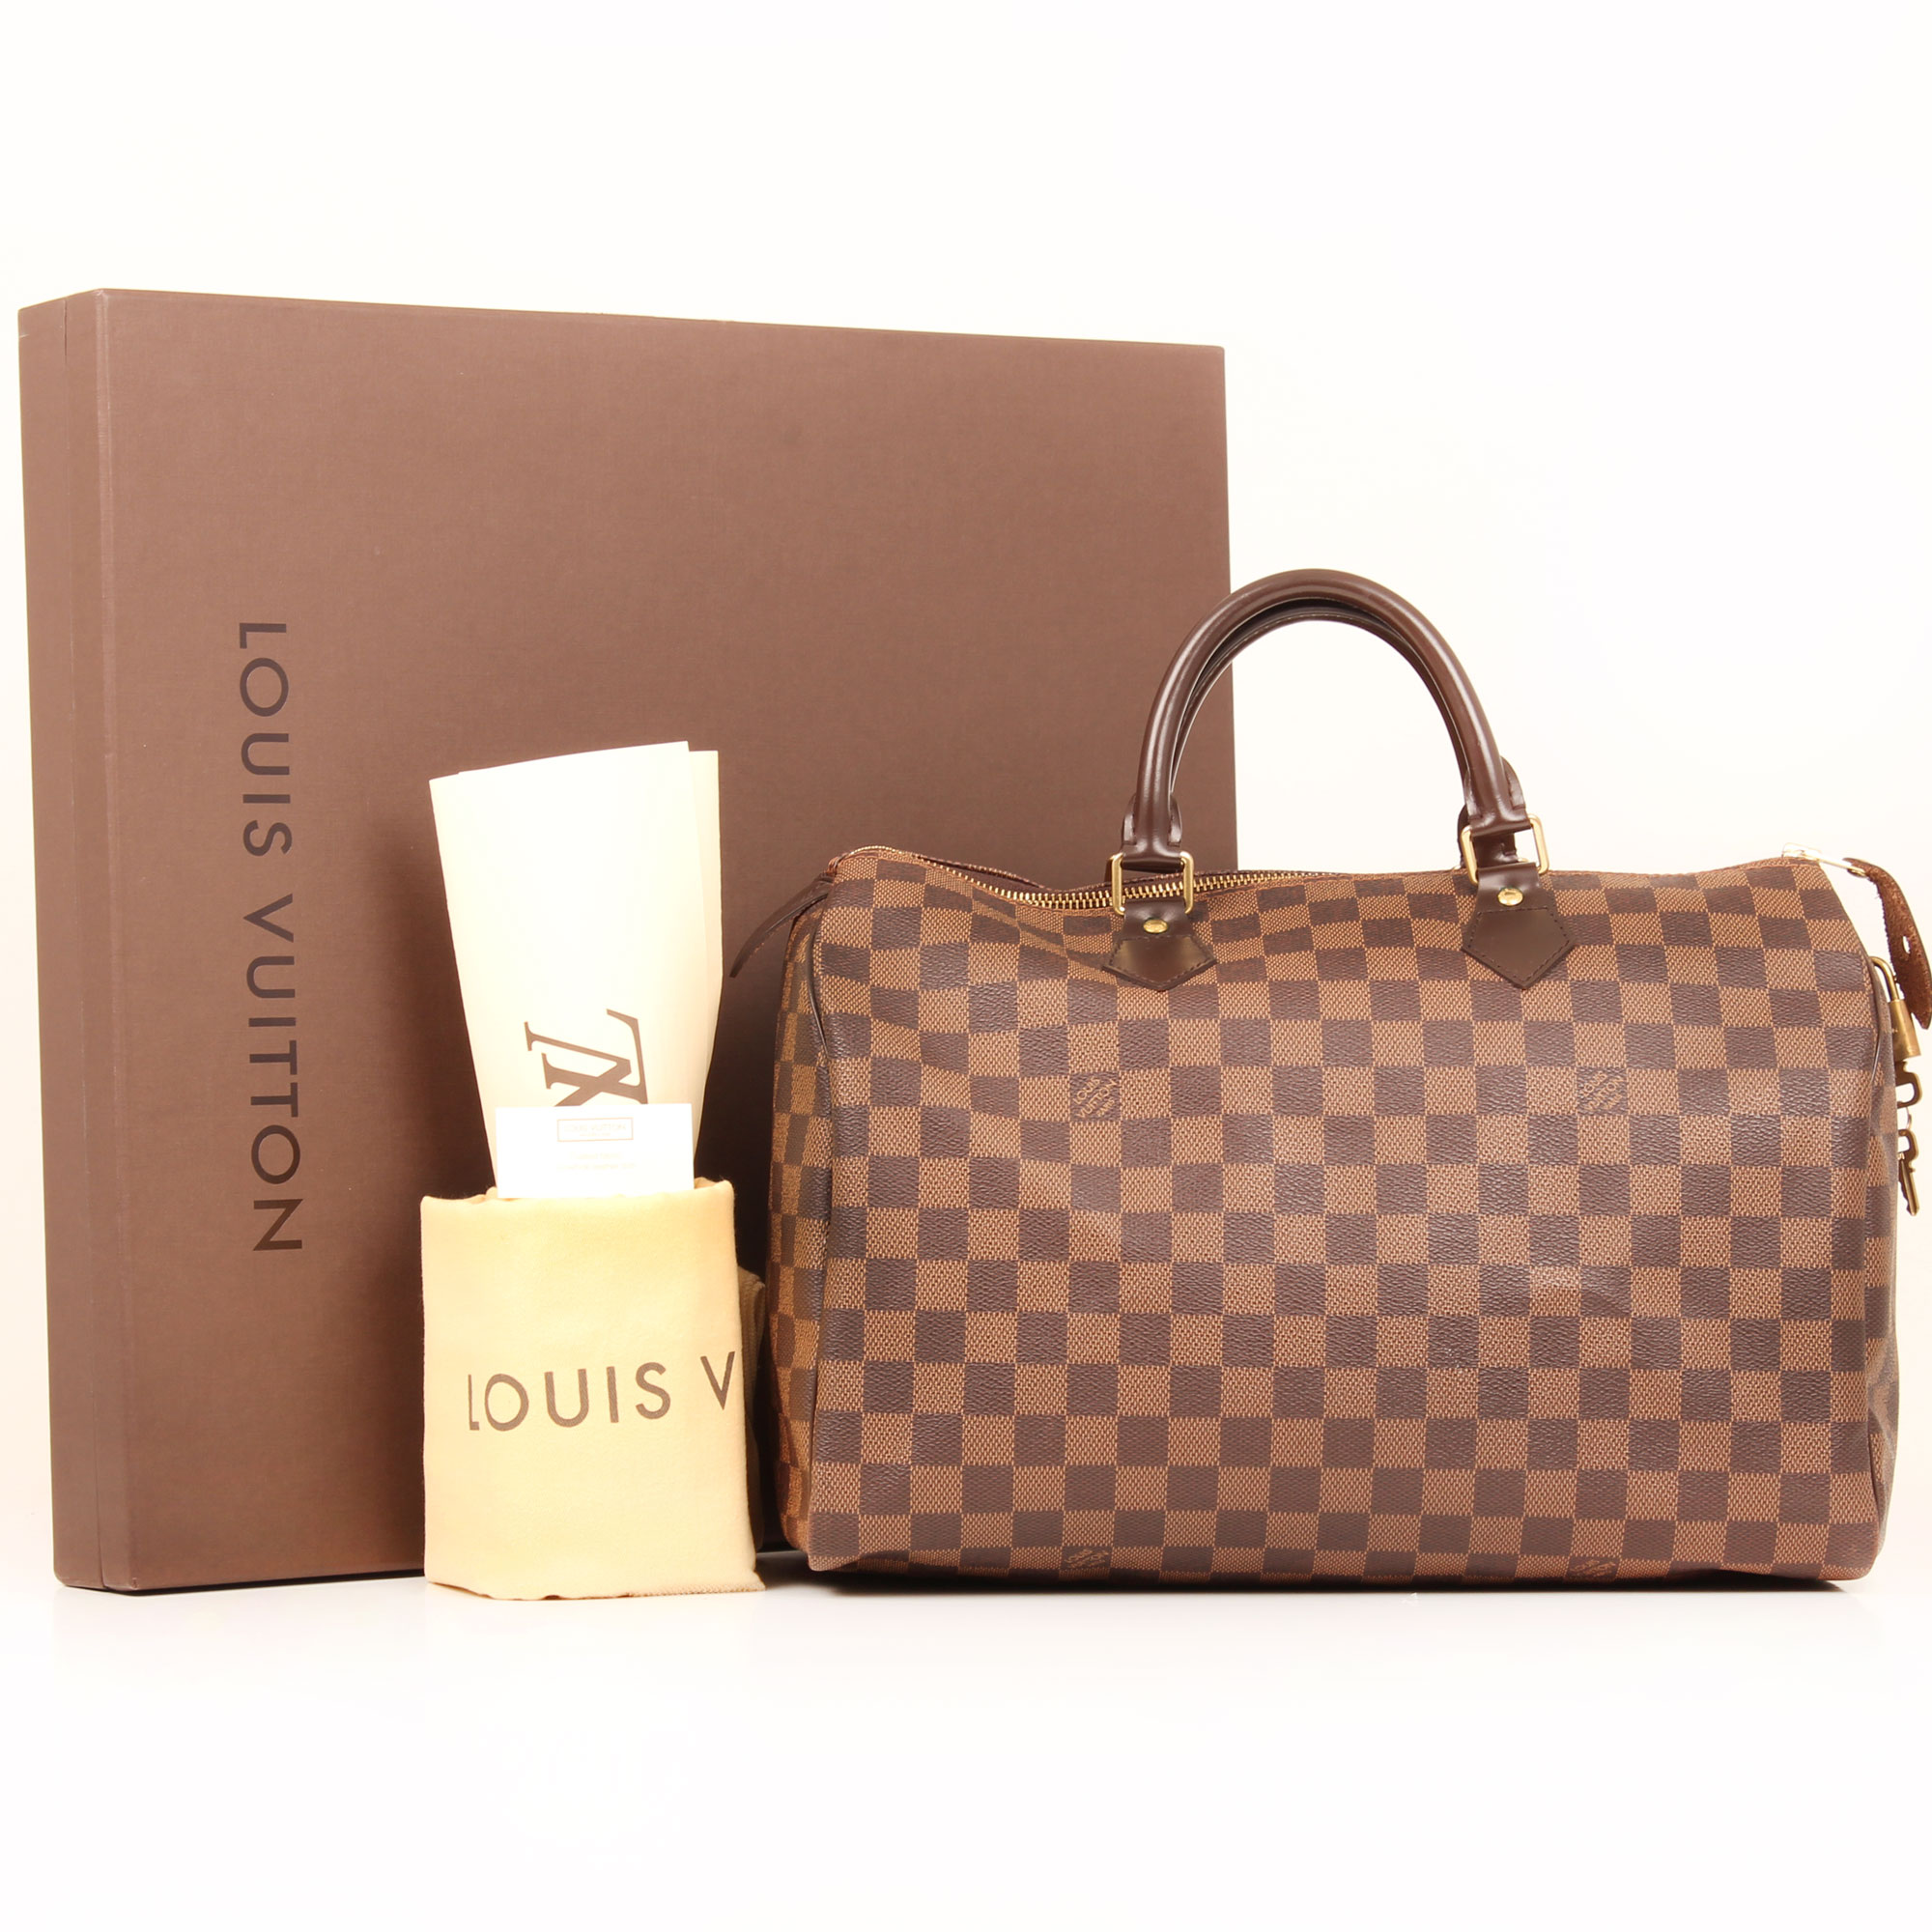 bag-louis-vuitton-speedy-35-damier-ebene-dustbag-box